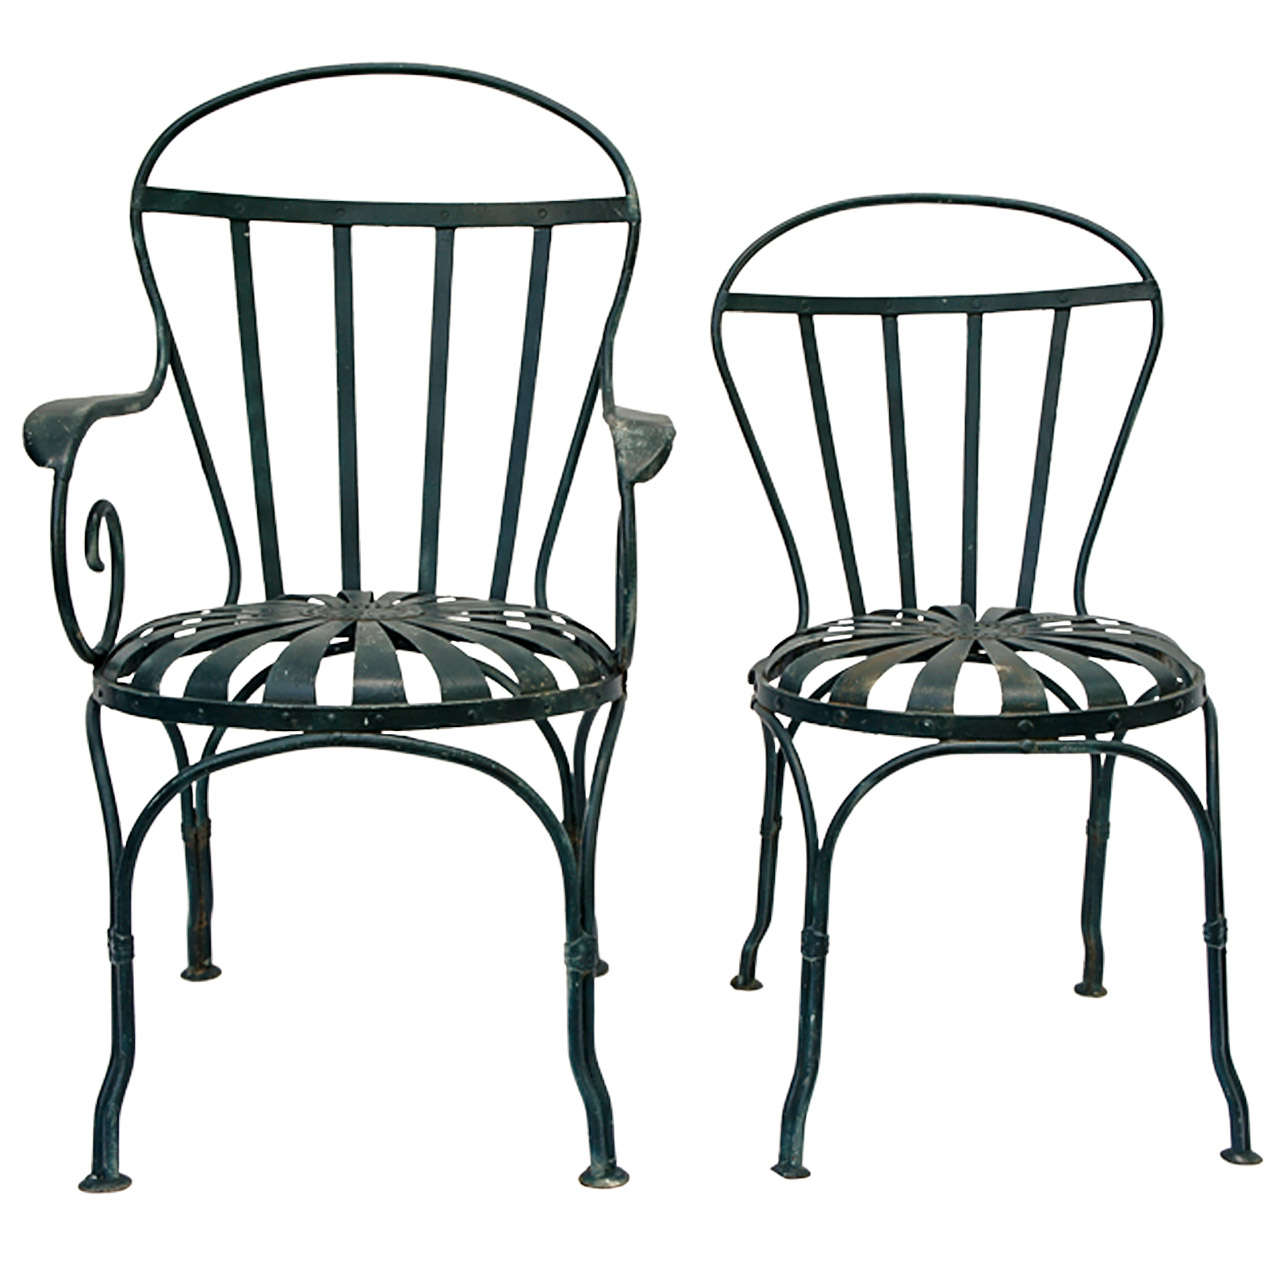 4 iron garden chairs at 1stdibs for Iron furniture